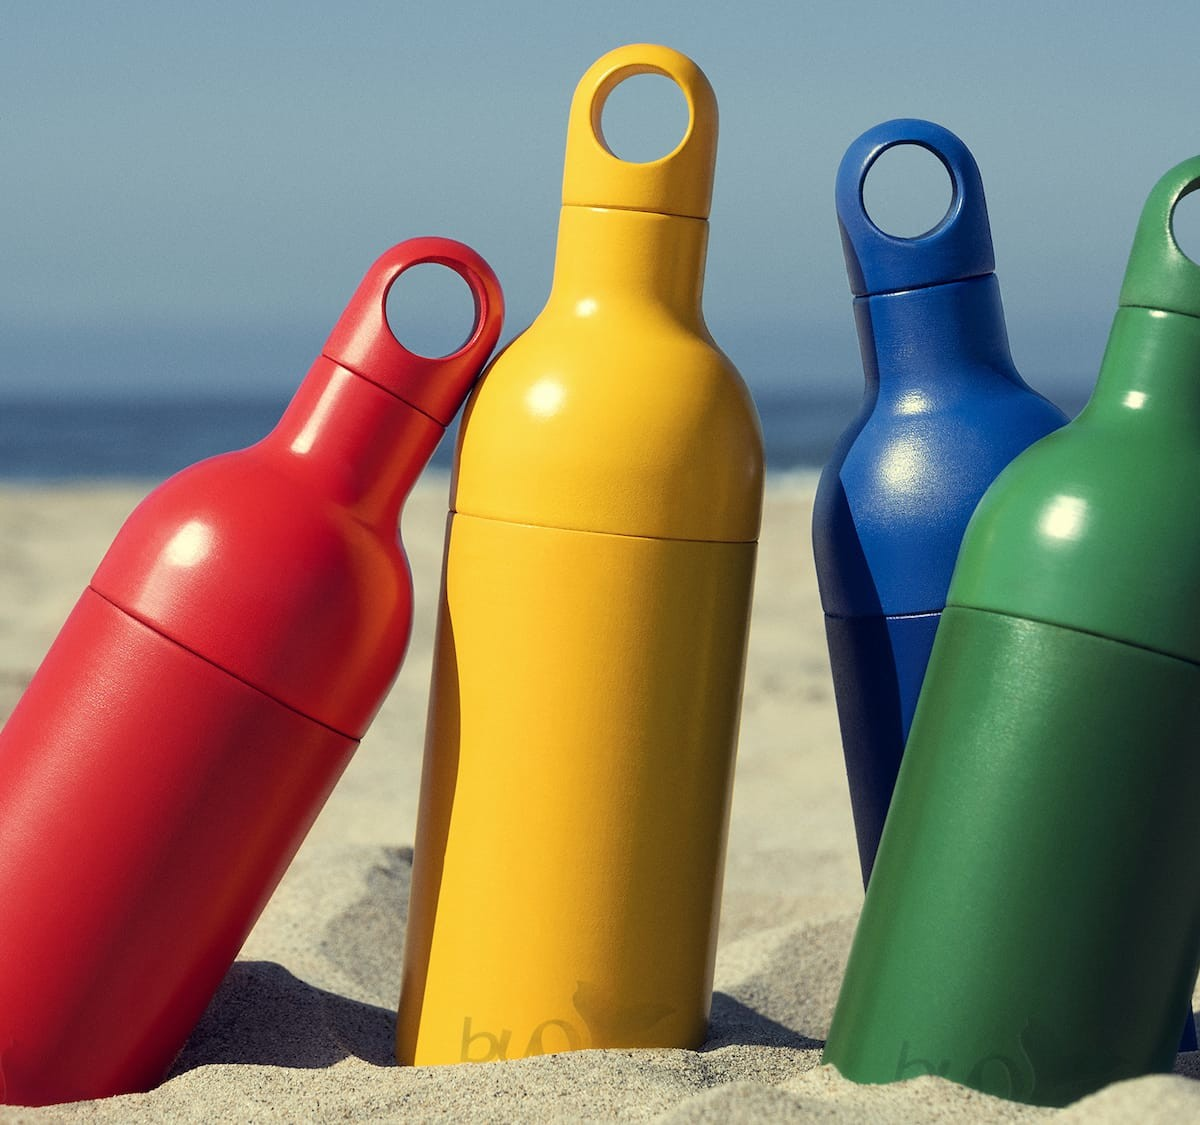 Buoy Bottle recycled water bottle consists of 100% recycled ocean-bound plastic